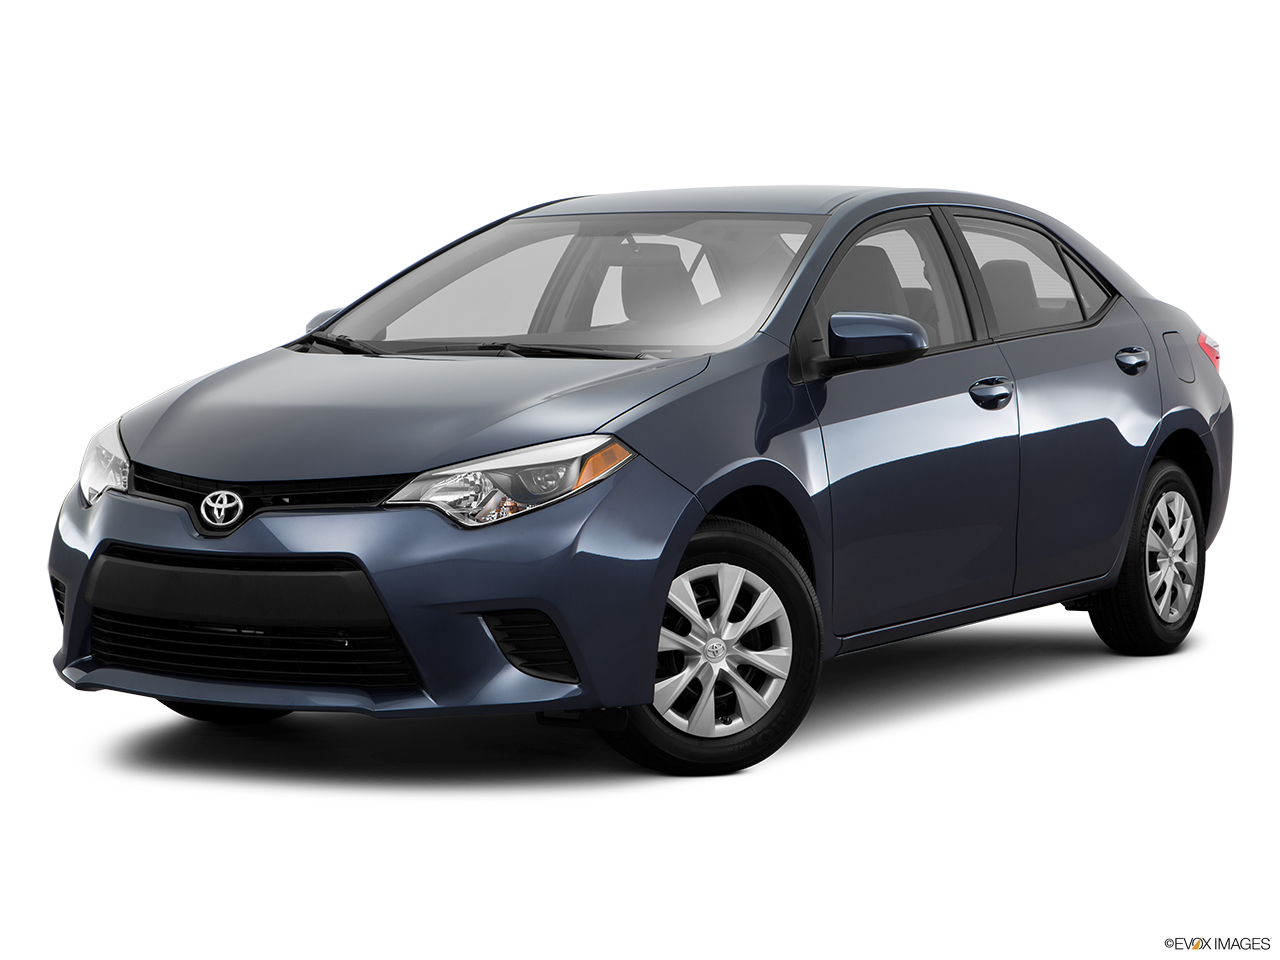 Test Drive A 2016 Toyota Corolla at Toyota of Glendale in Los Angeles